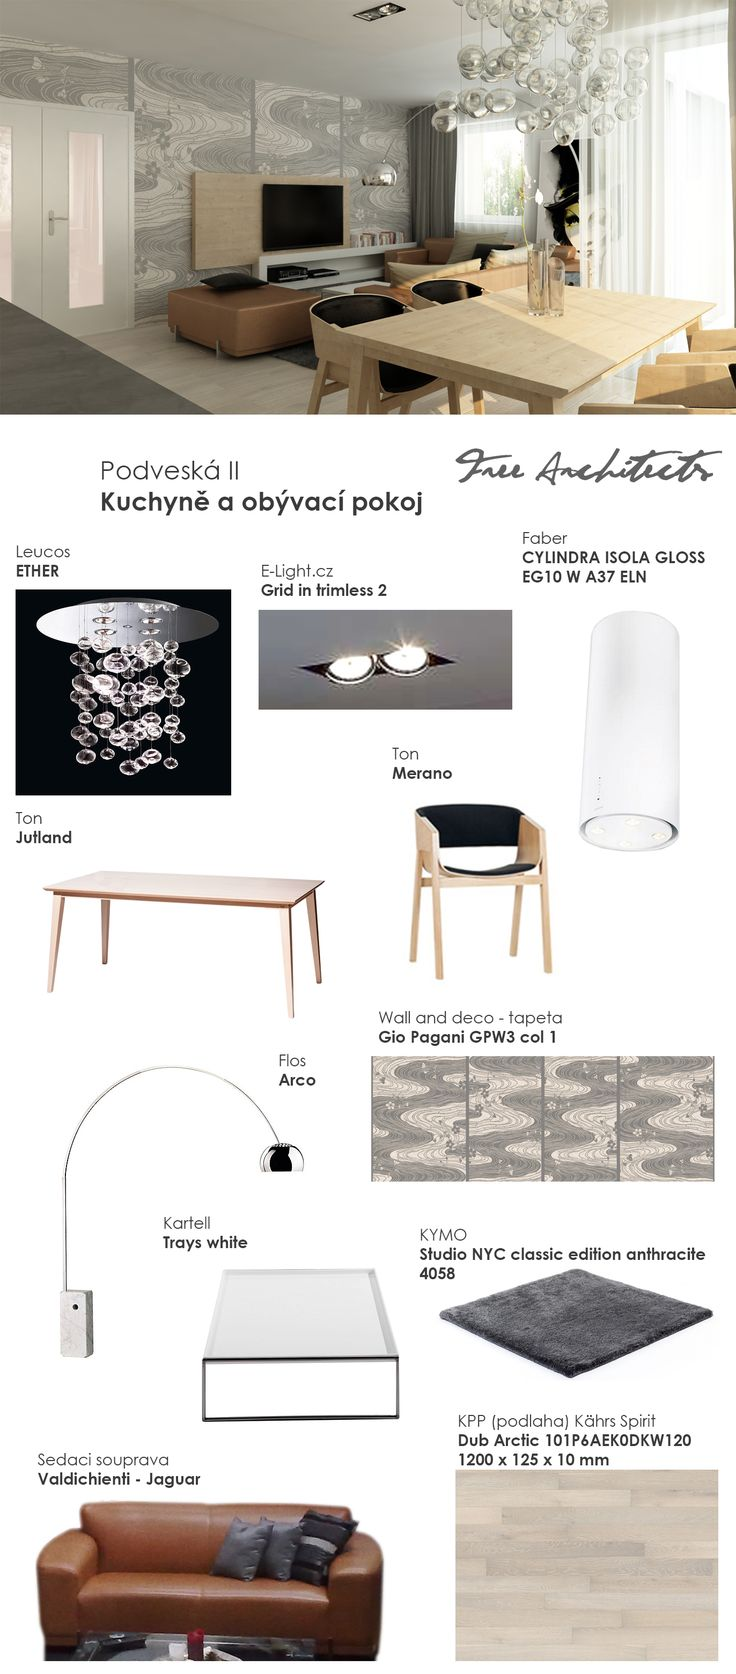 Free architects living room design collection brno for Design apartment udolni brno